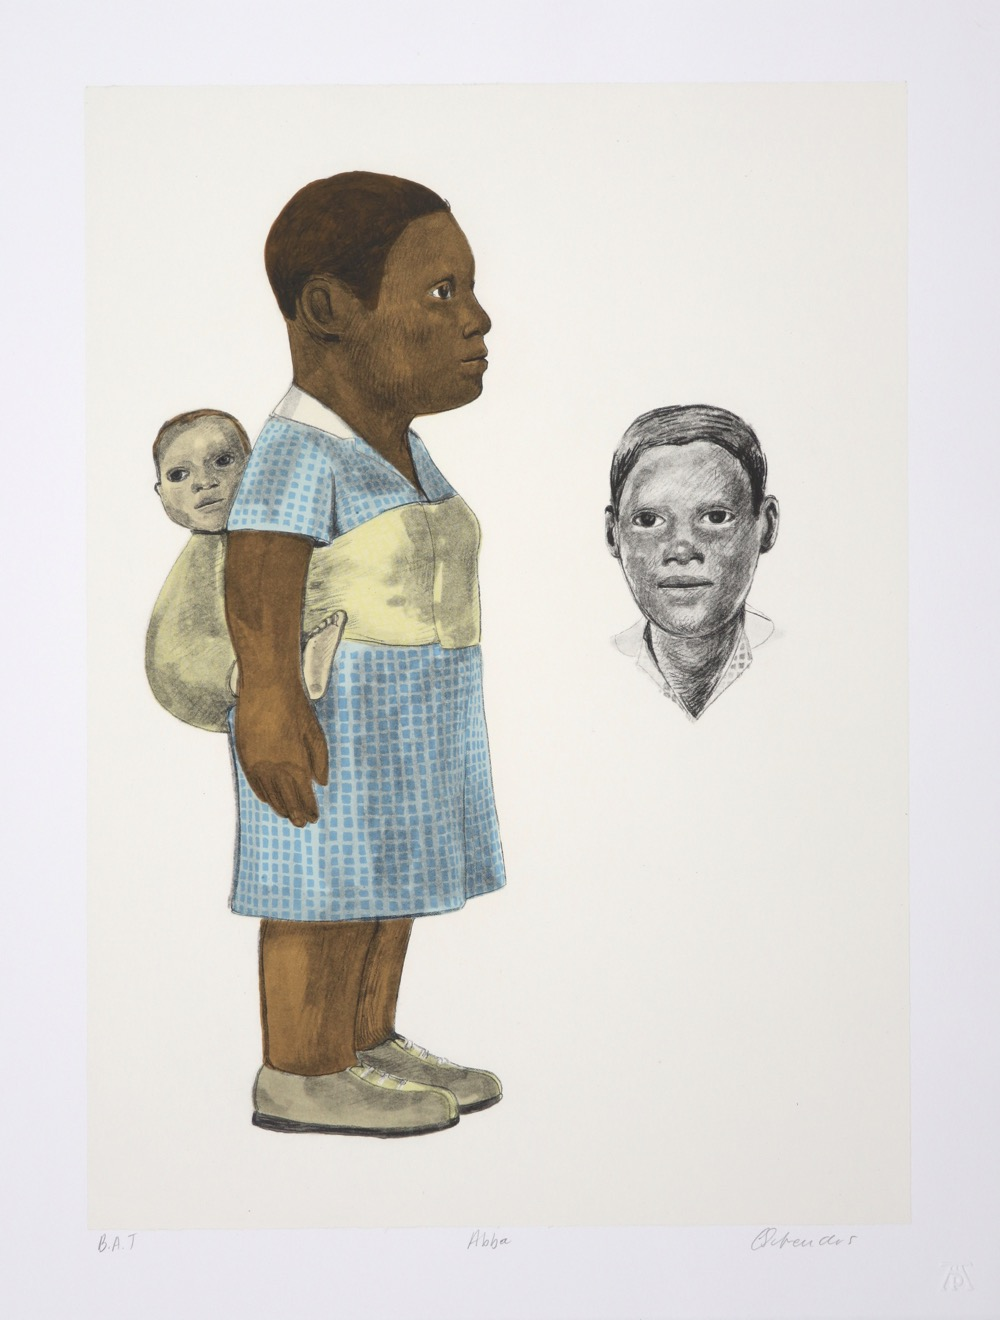 Black woman in profile carrying a white baby on her back. Portrait detail of her face next to figure.